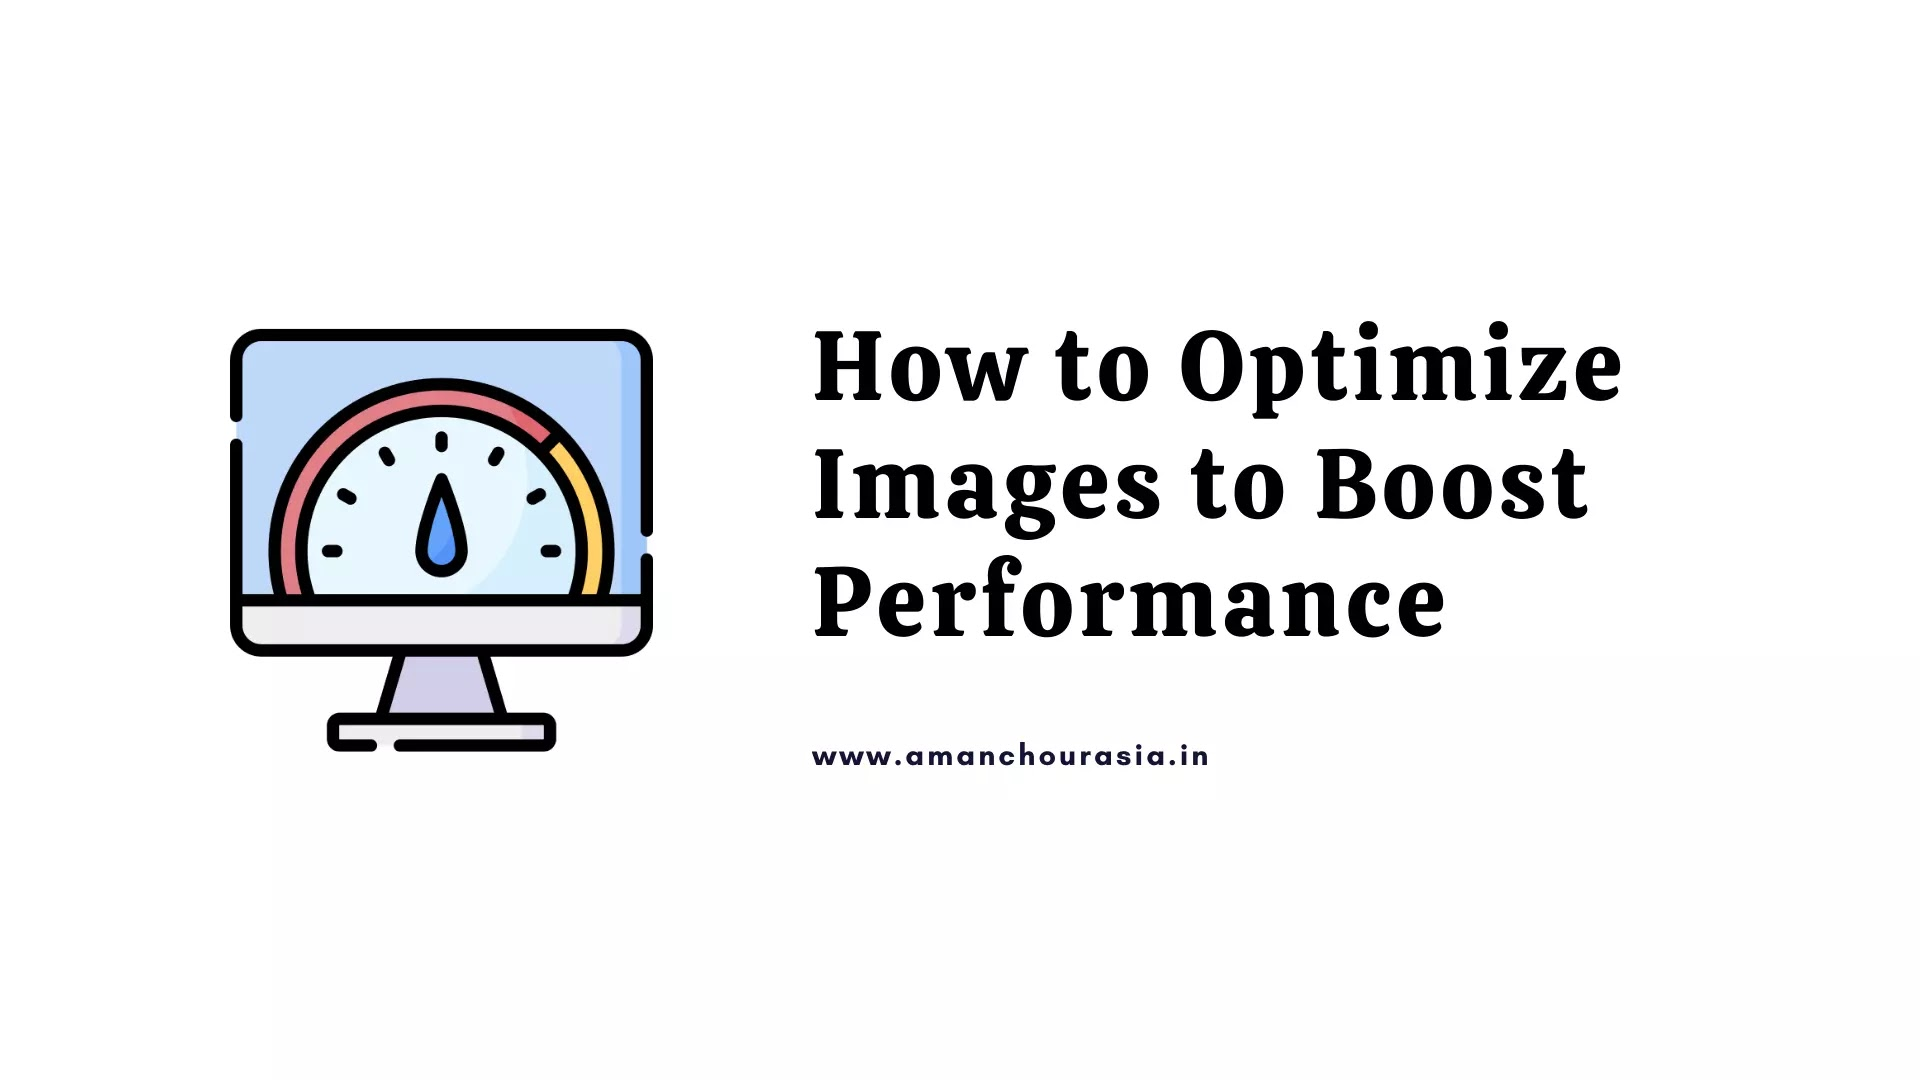 How to Optimize Images to Boost Performance